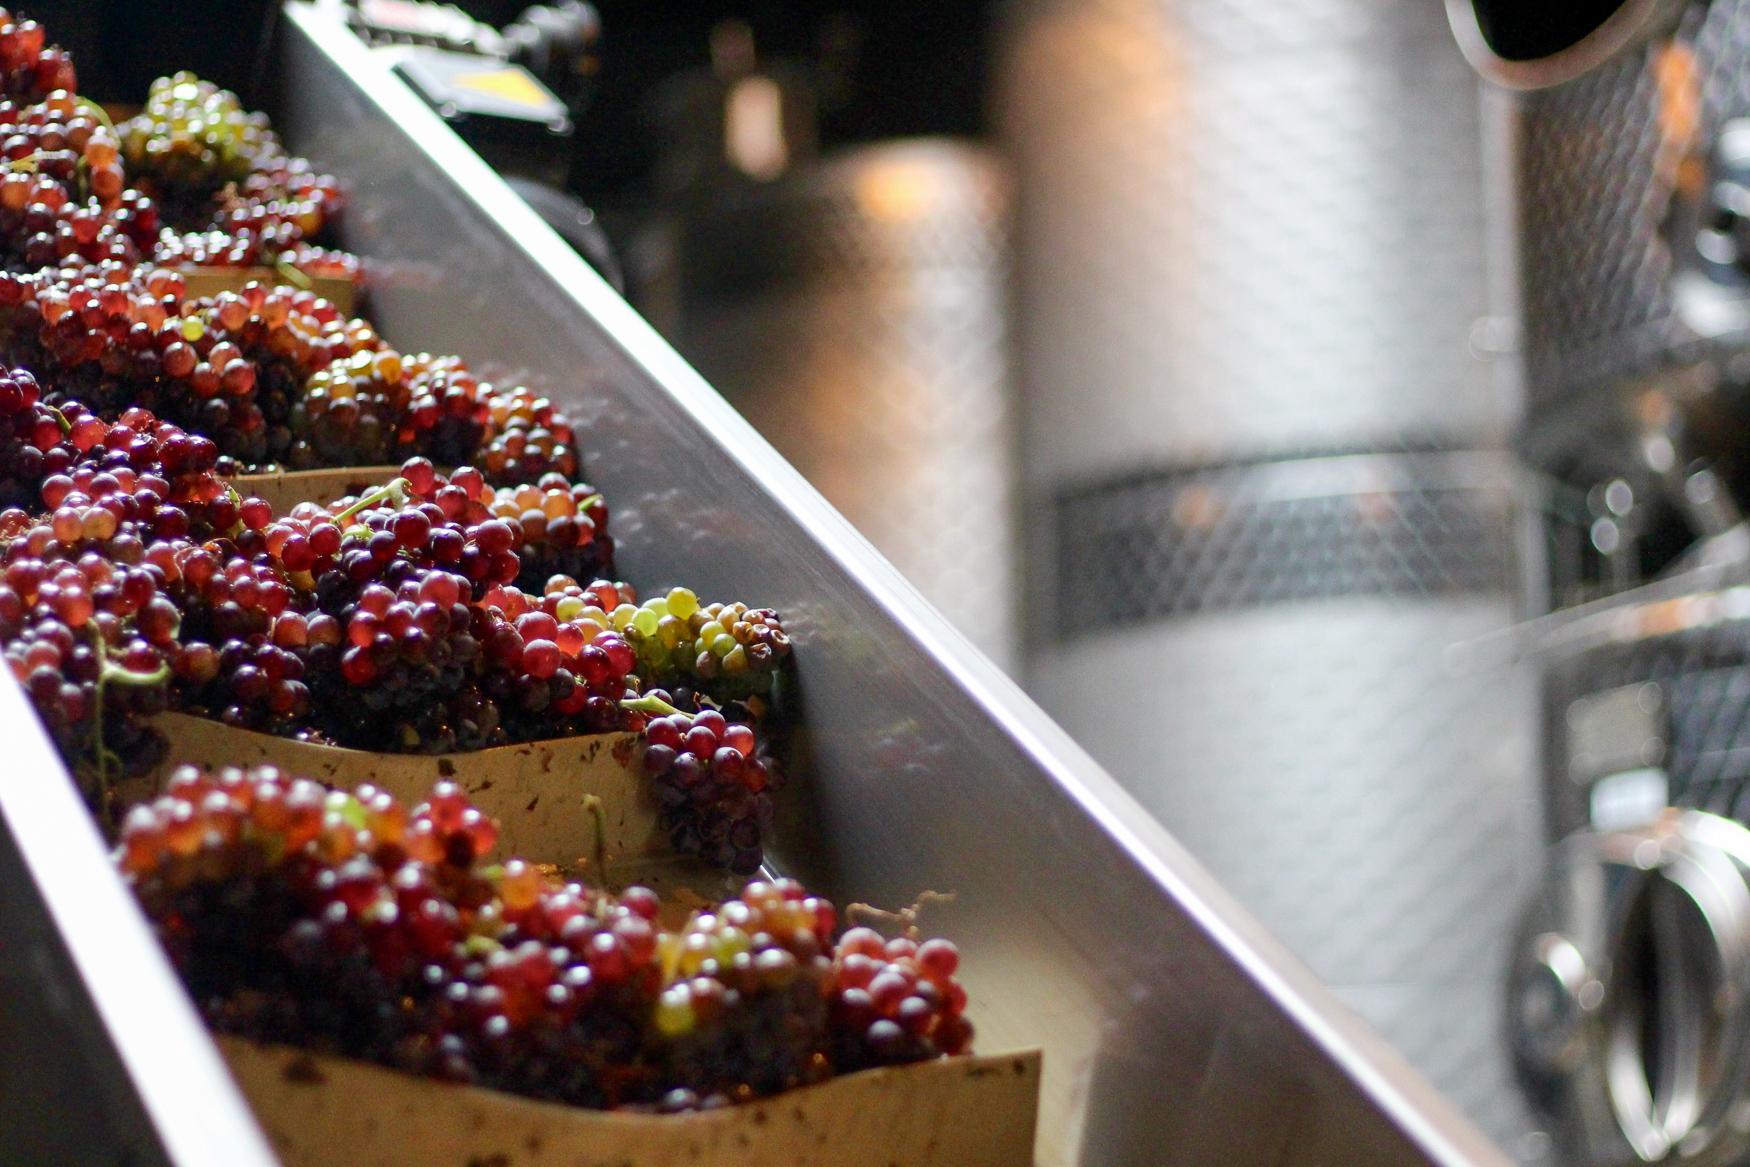 Grapes being sent to the destemmer. (Image courtesy of District Winery)